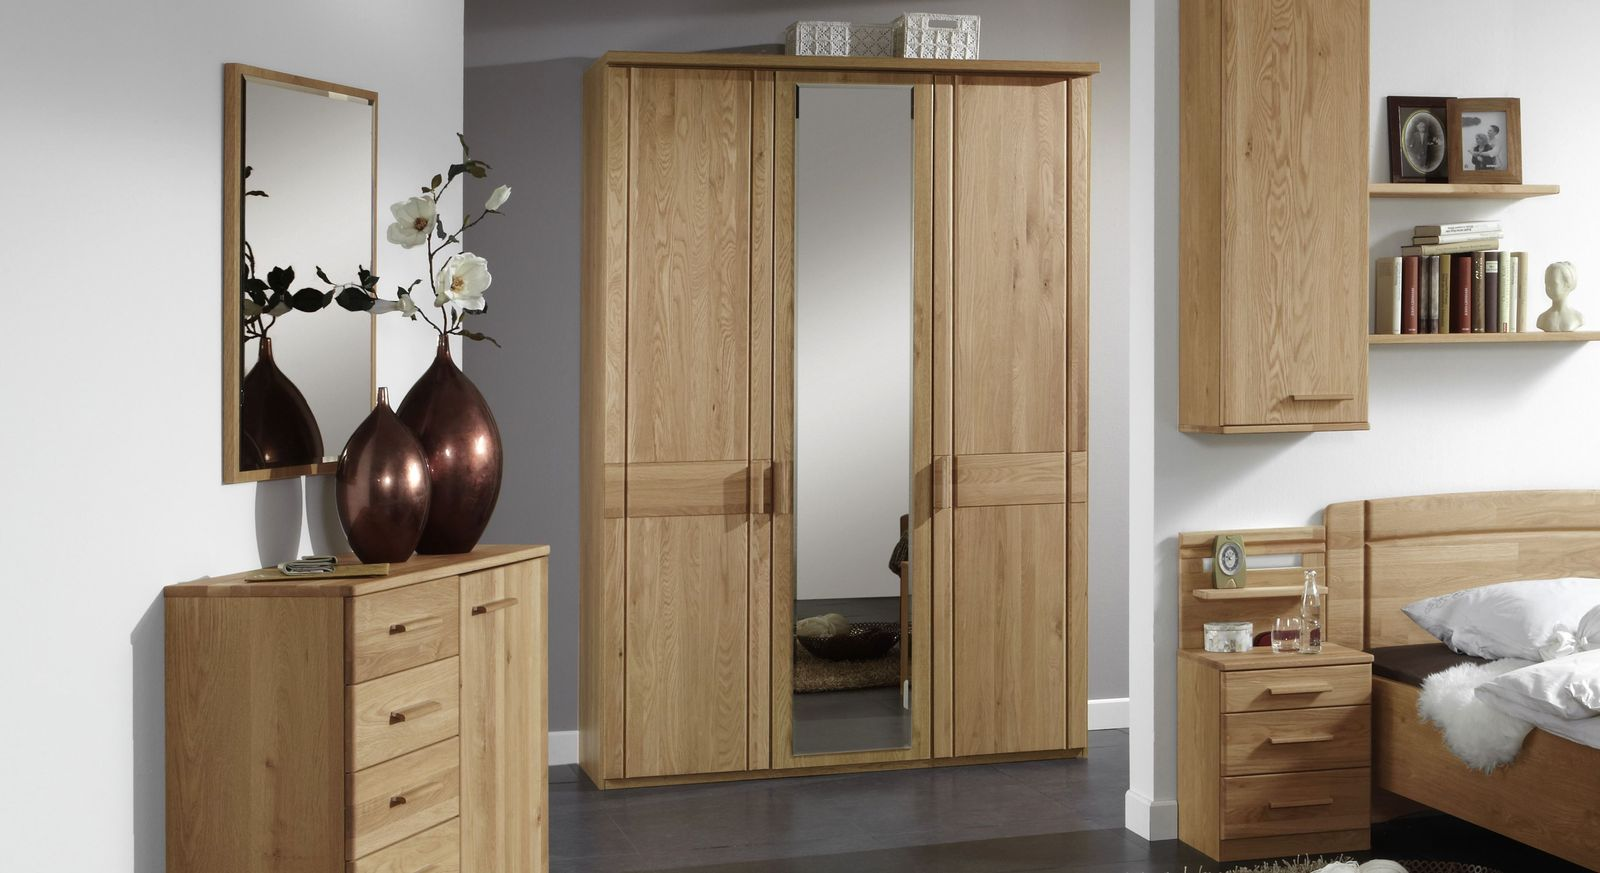 eichenschrank mit spiegeln individuell einteilbar toliara. Black Bedroom Furniture Sets. Home Design Ideas